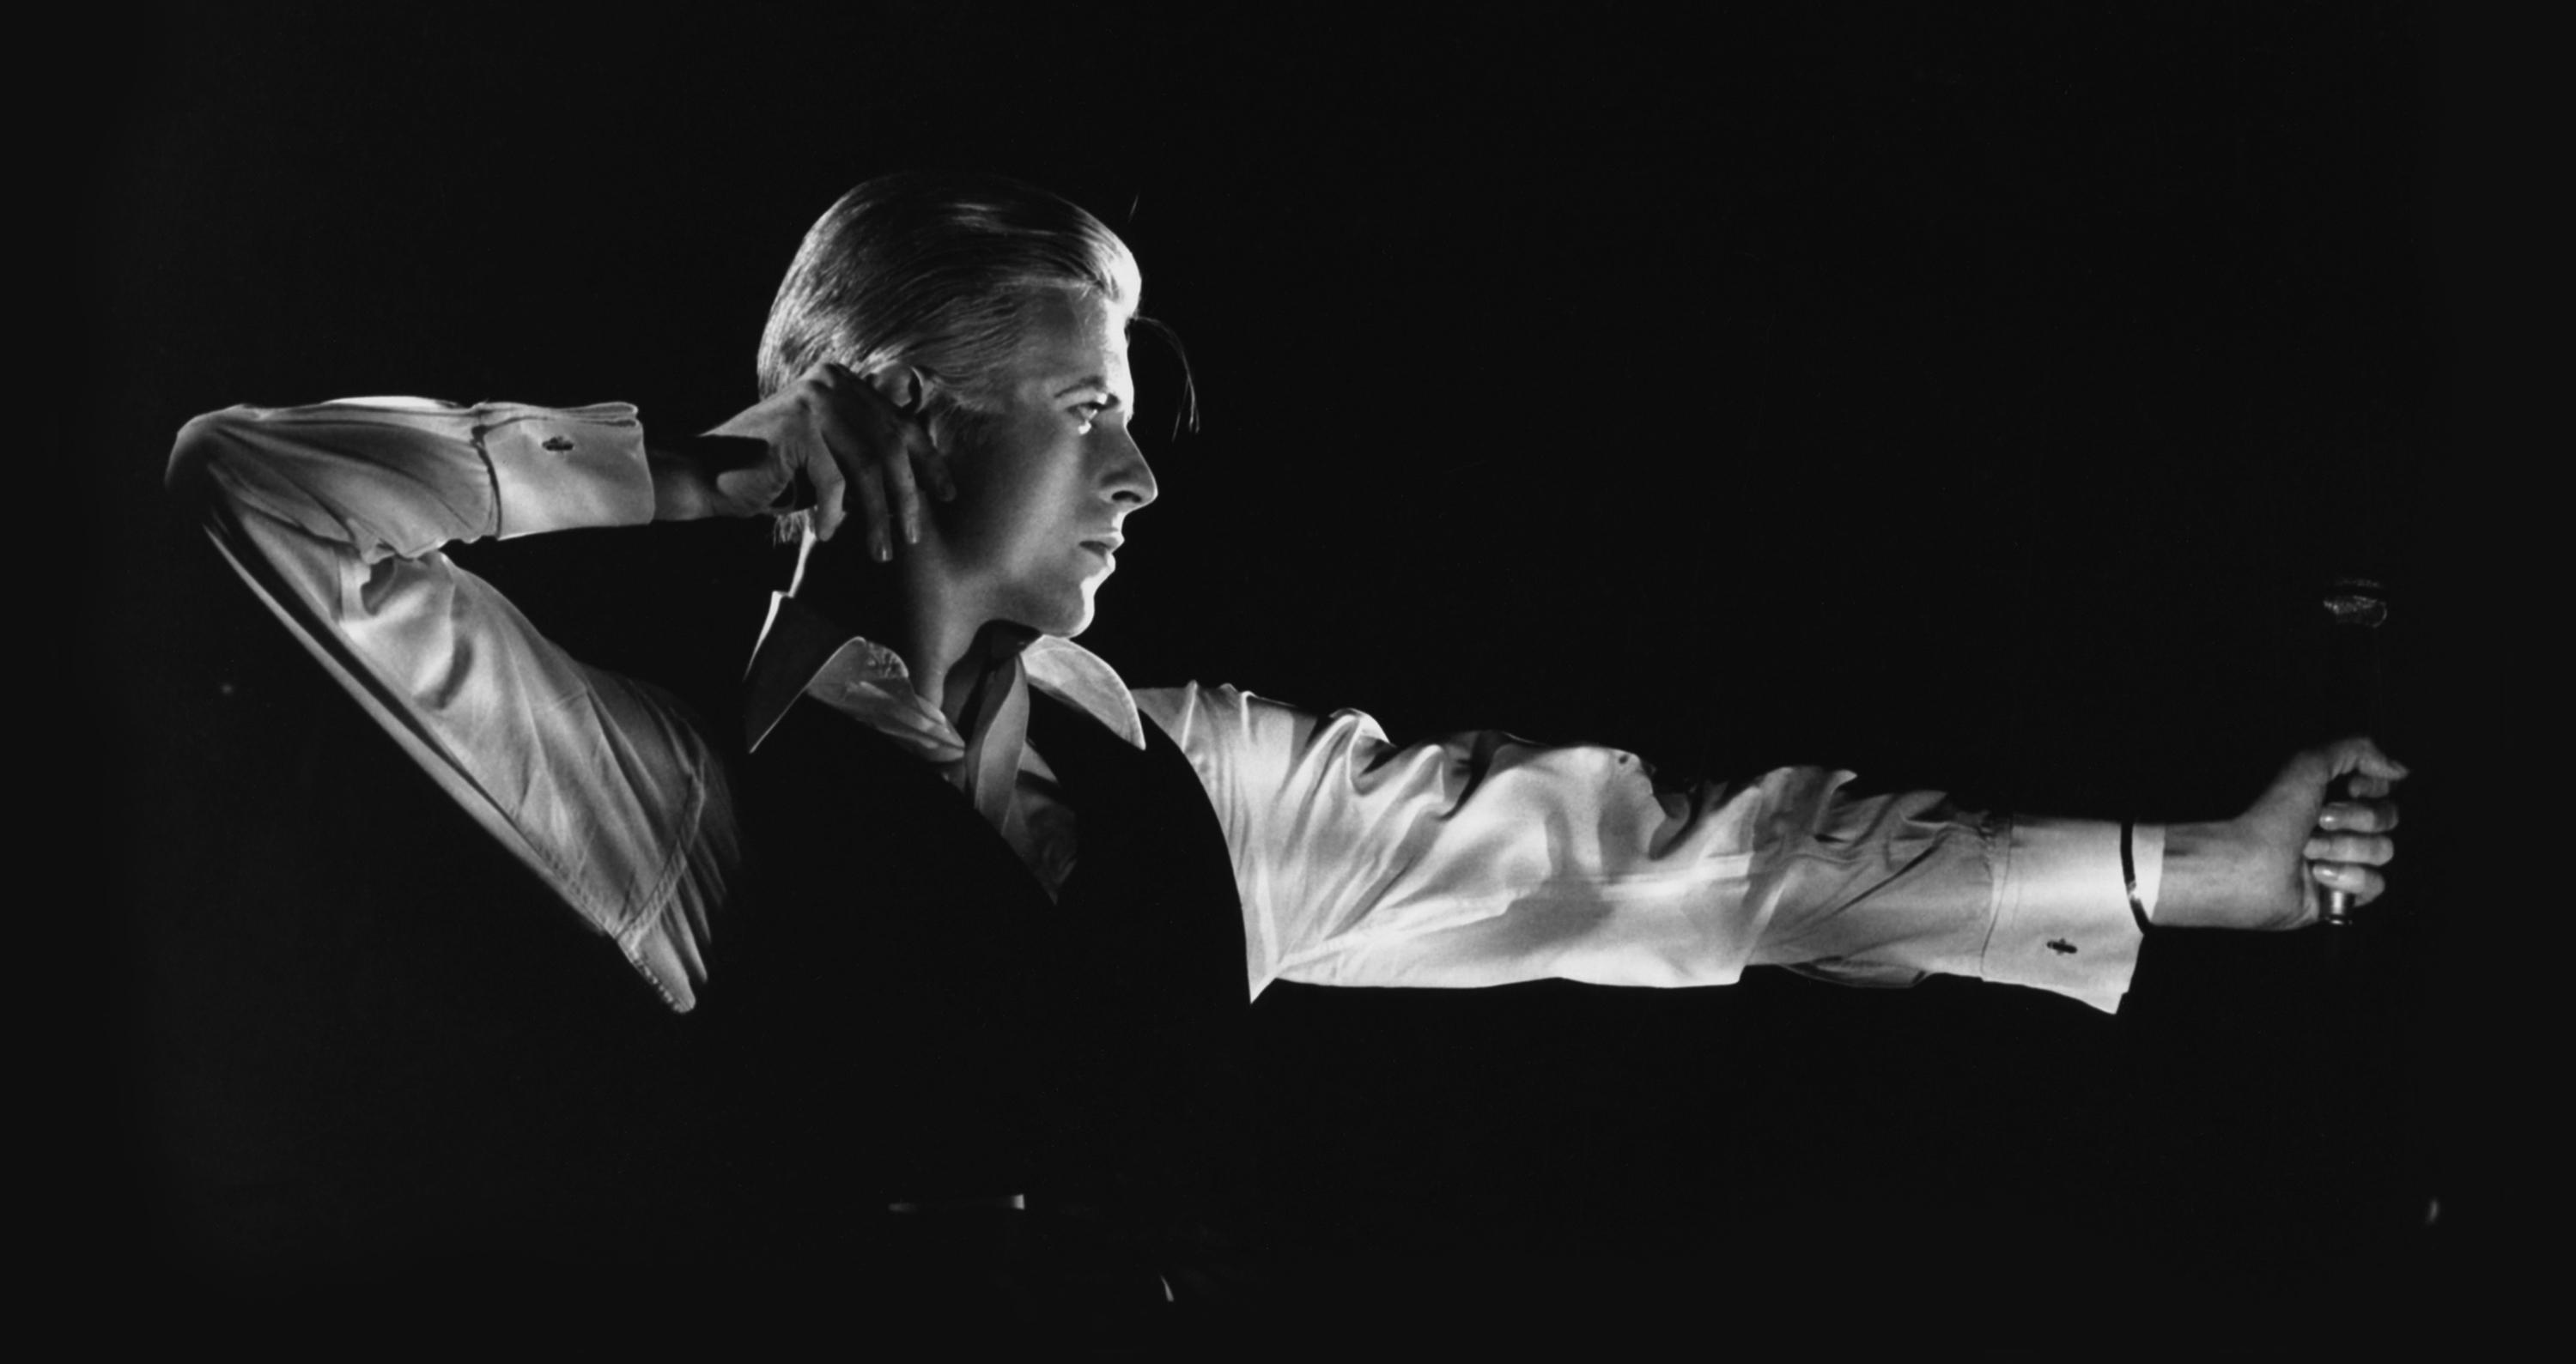 Black-and-white portrait of David Bowie in profile, arms positioned as though shooting a bow and arrow, a microphone in his extended arm